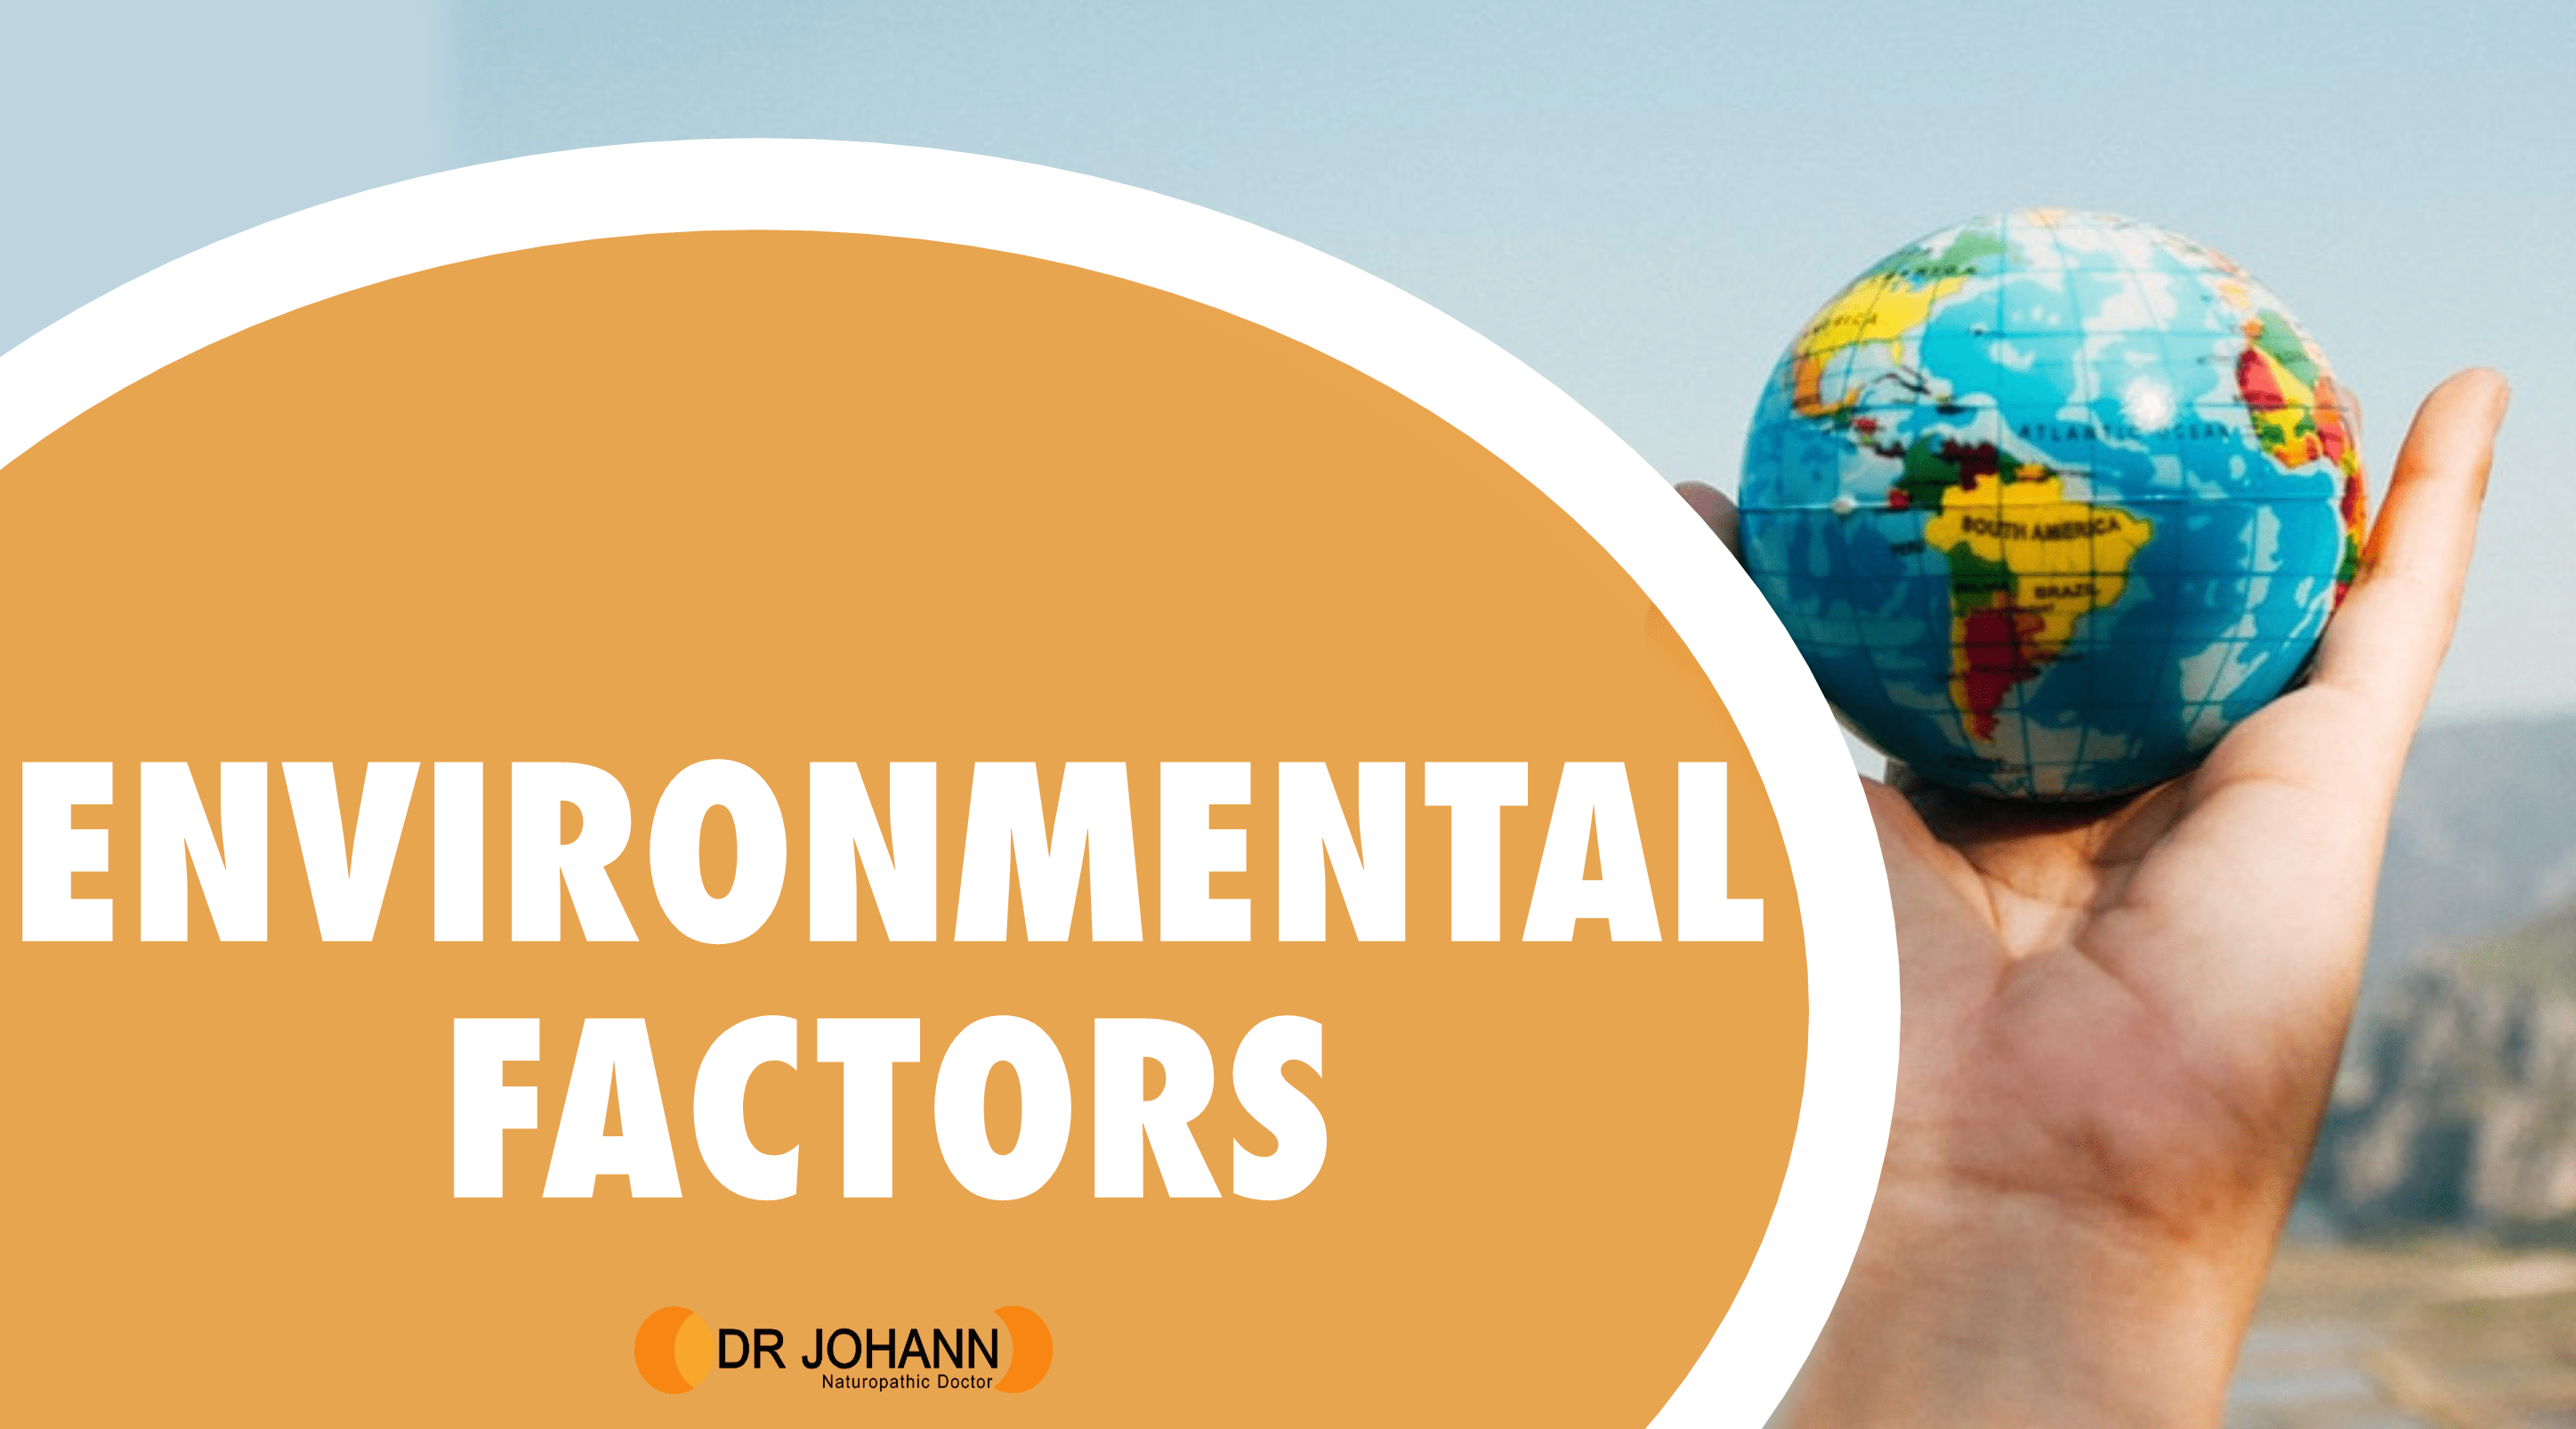 environmental factors of autoimmune disease